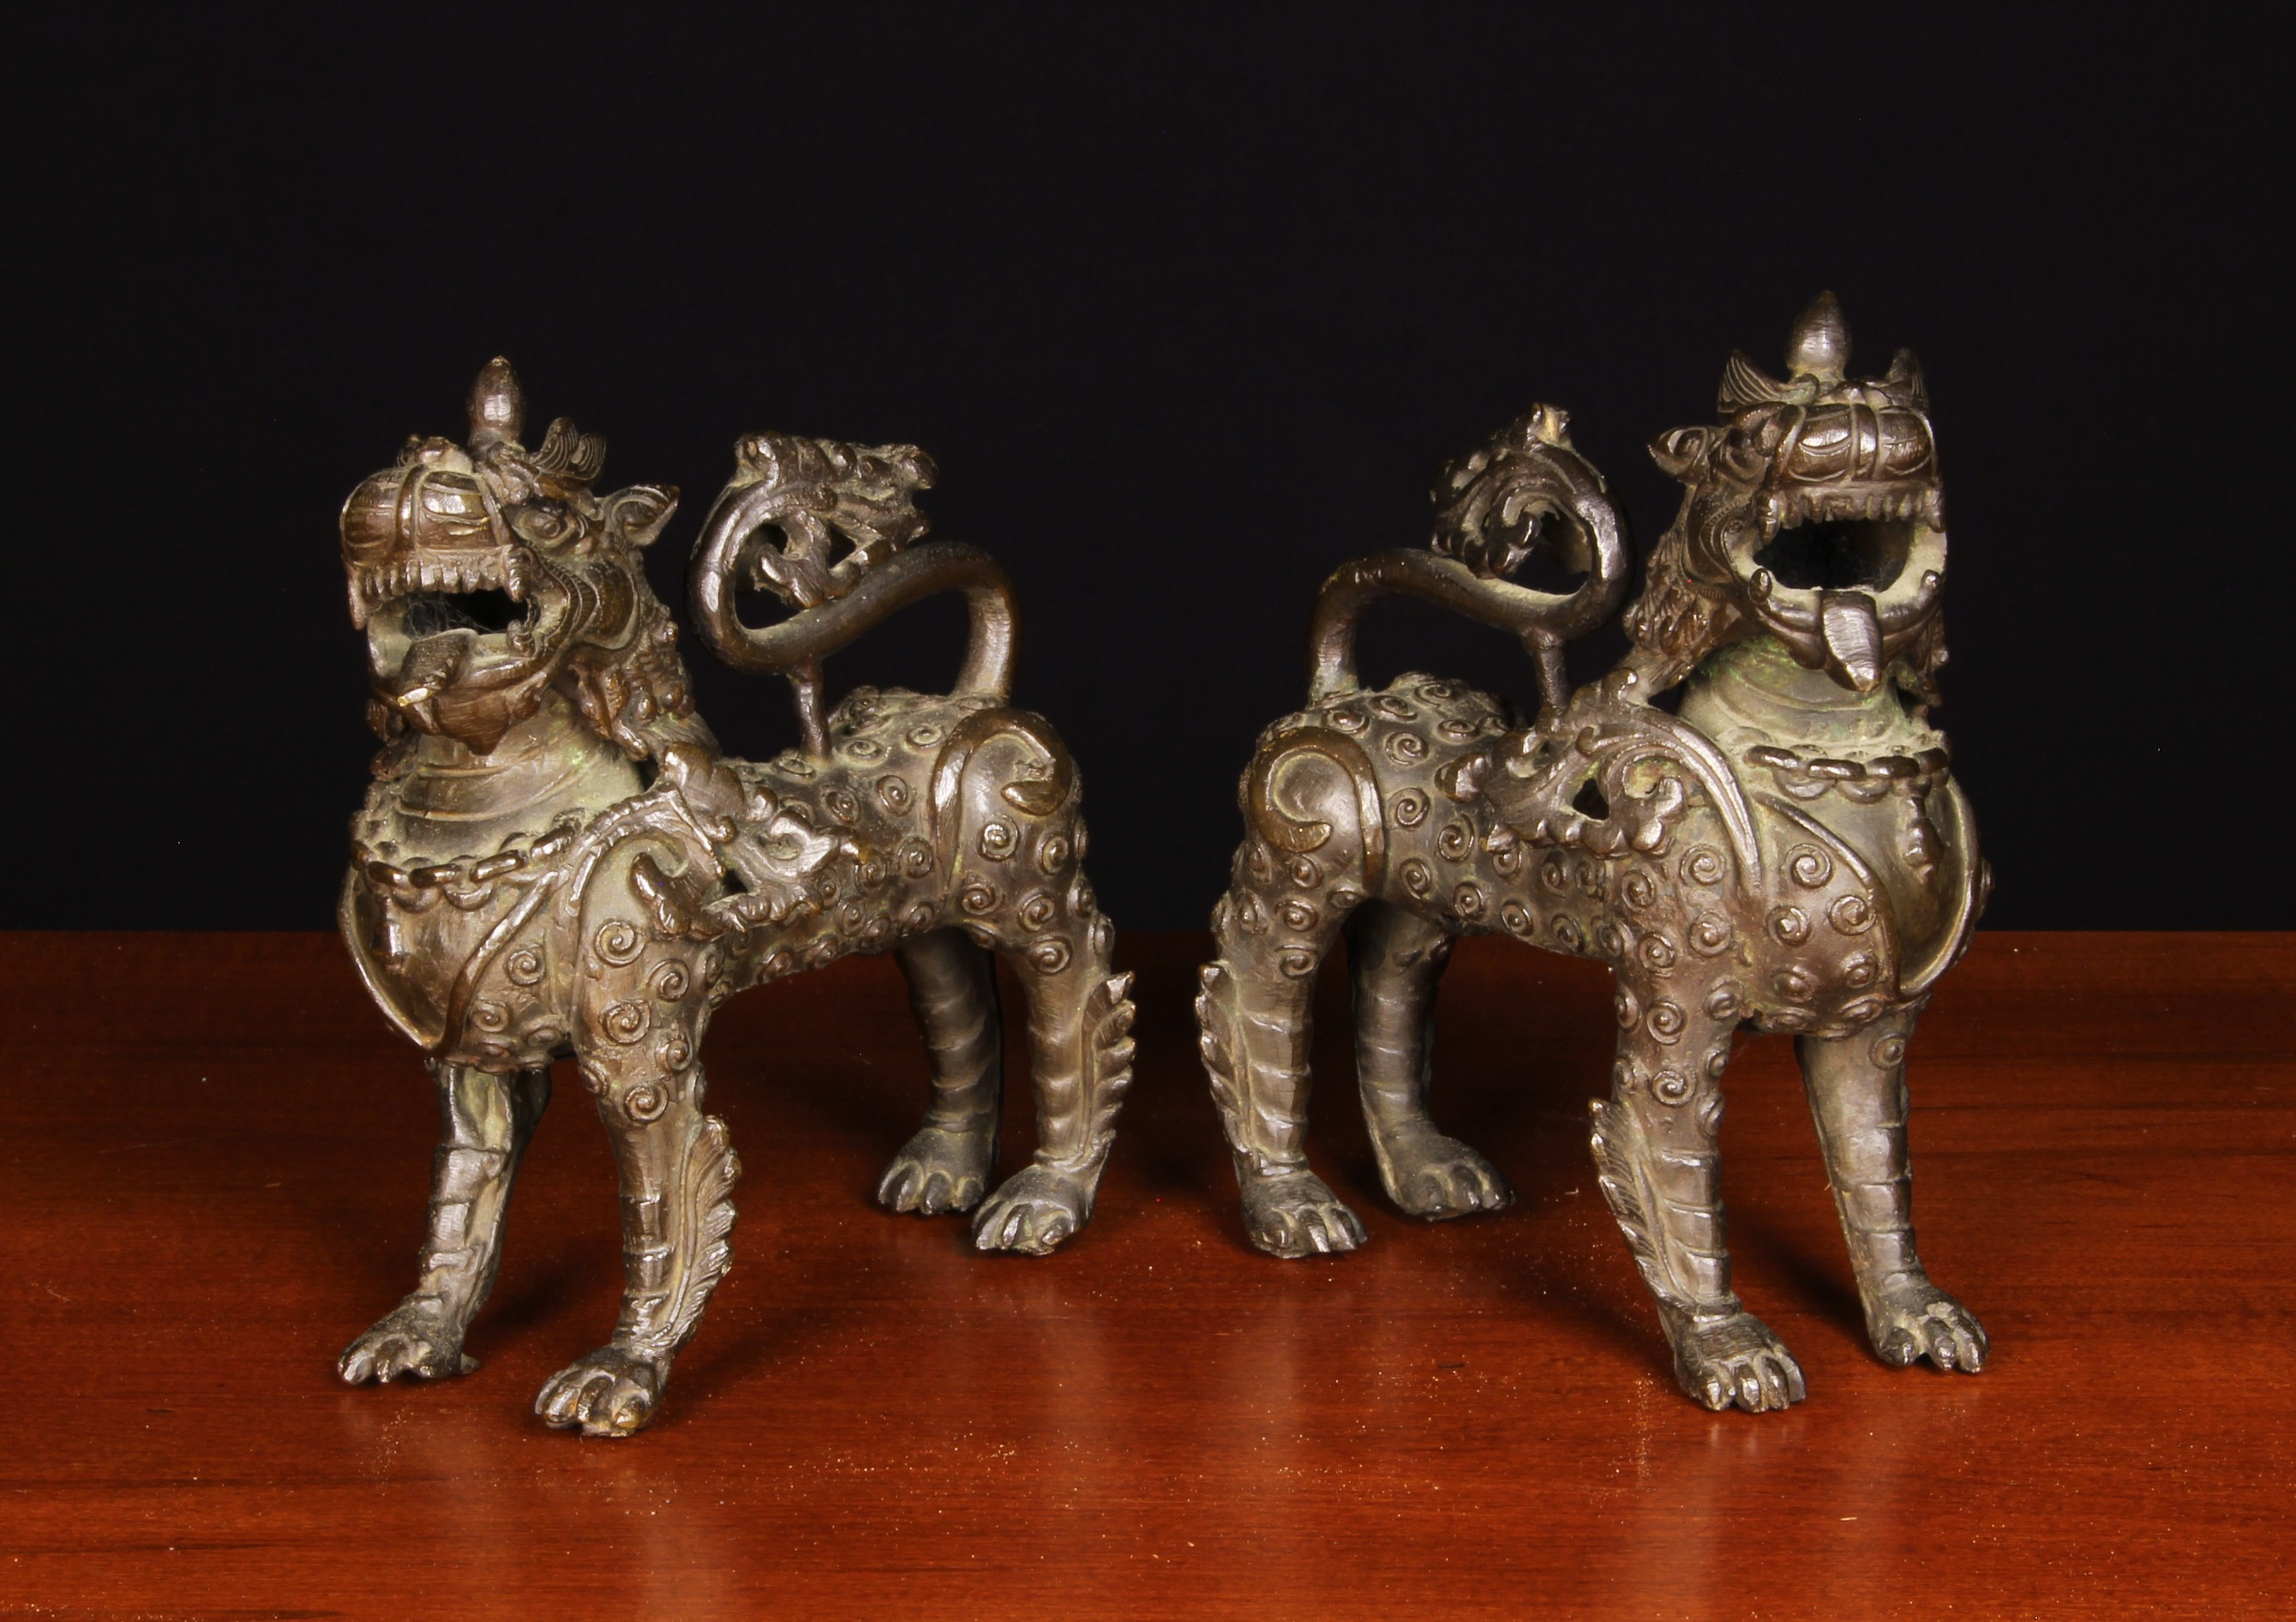 A Pair of Antique Bronze Kylins. - Image 2 of 2